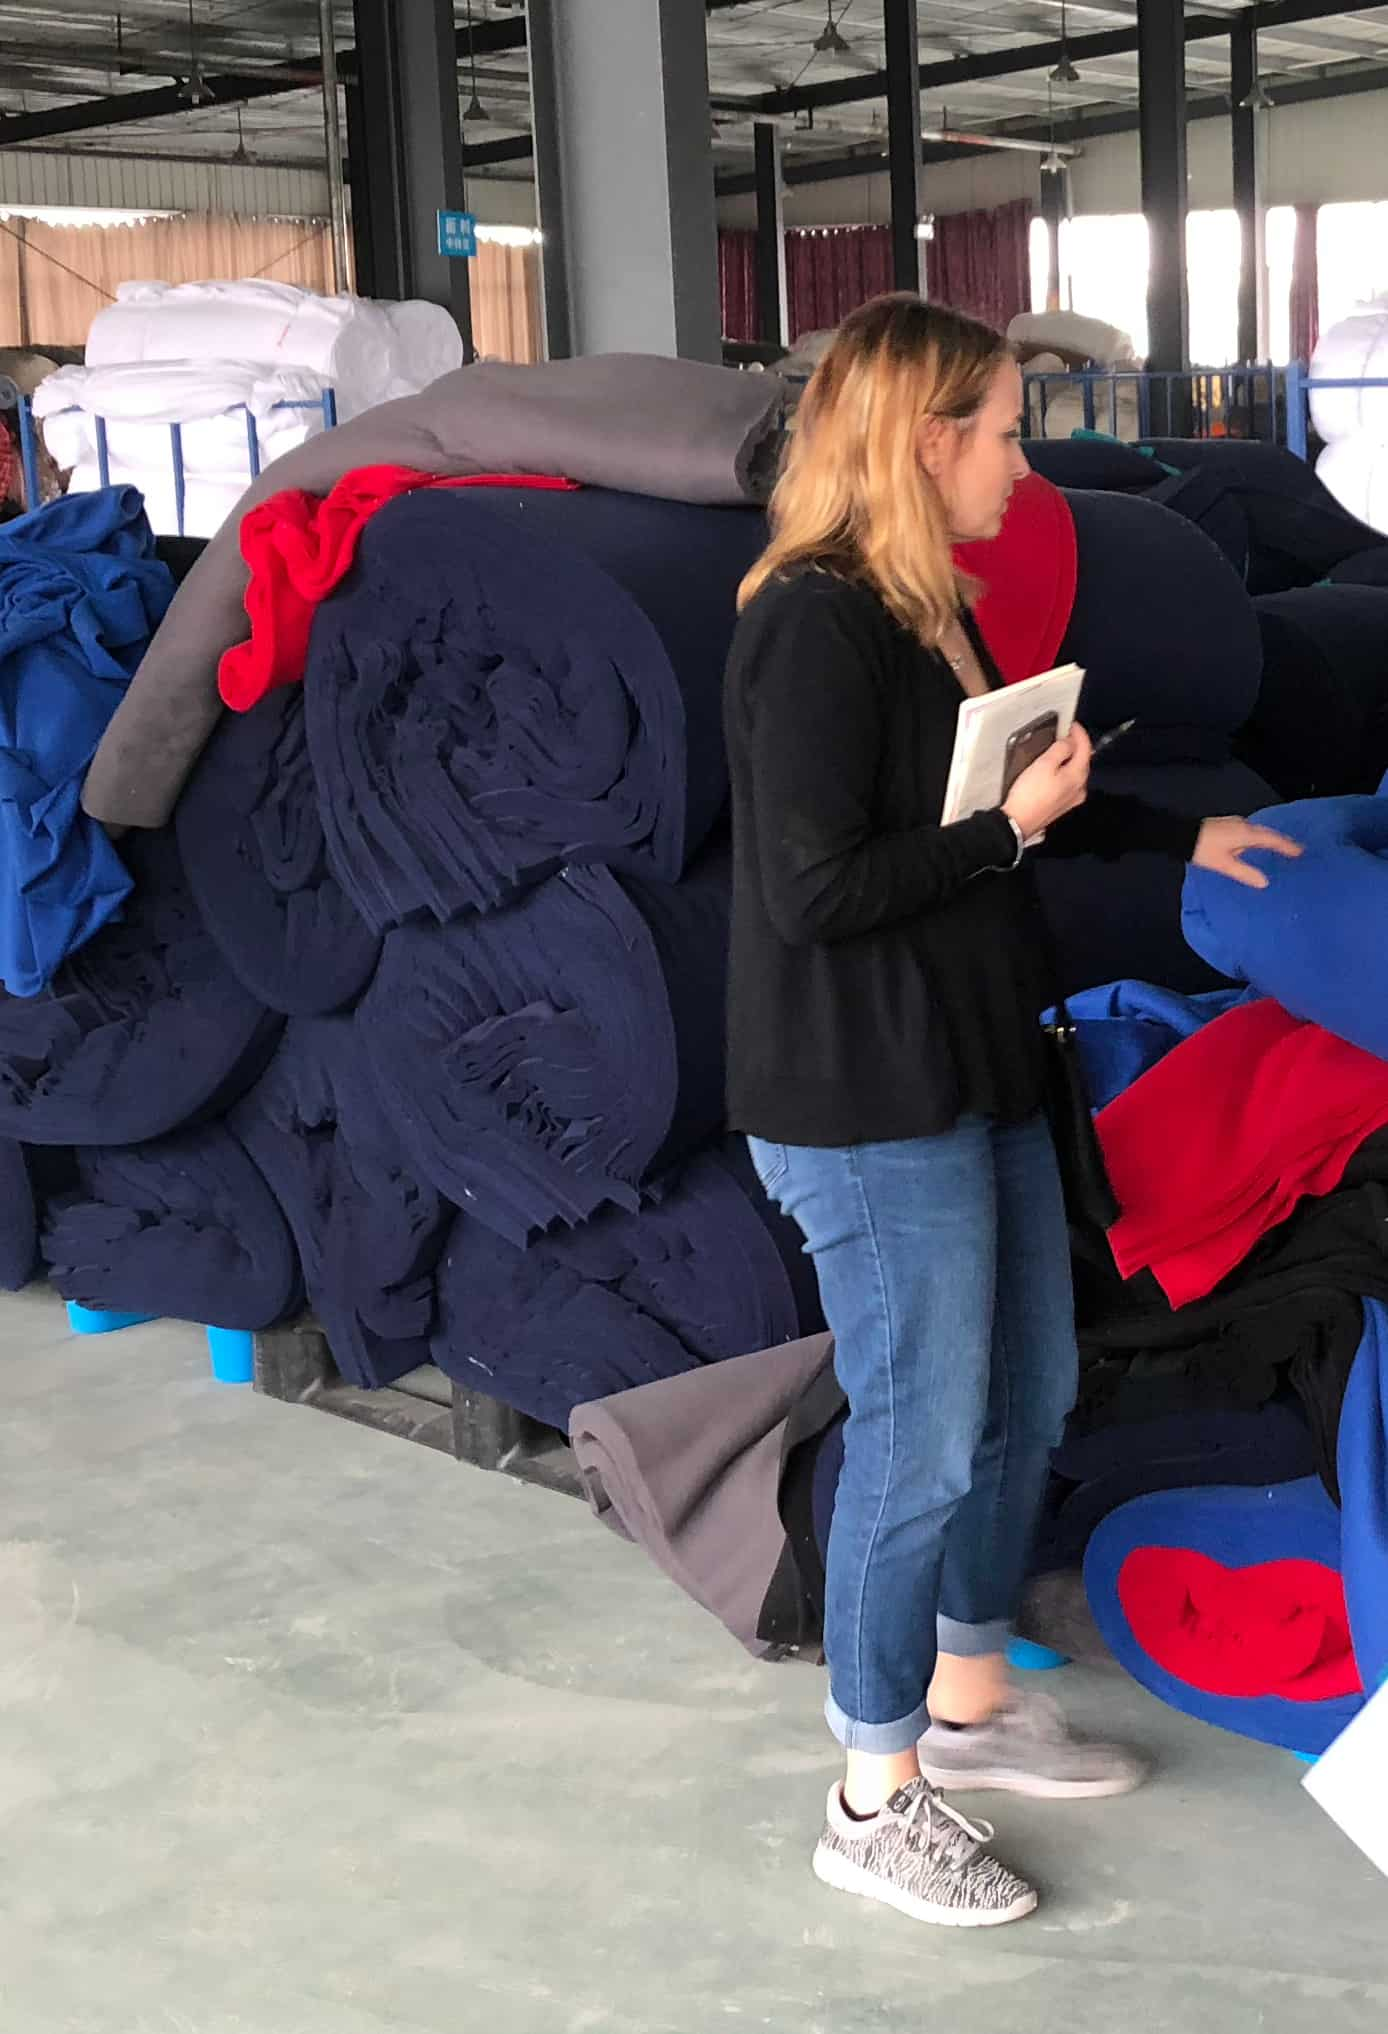 Member of 4imprint's merchandising team reviewing and selecting promotional fleece fabric rolls.